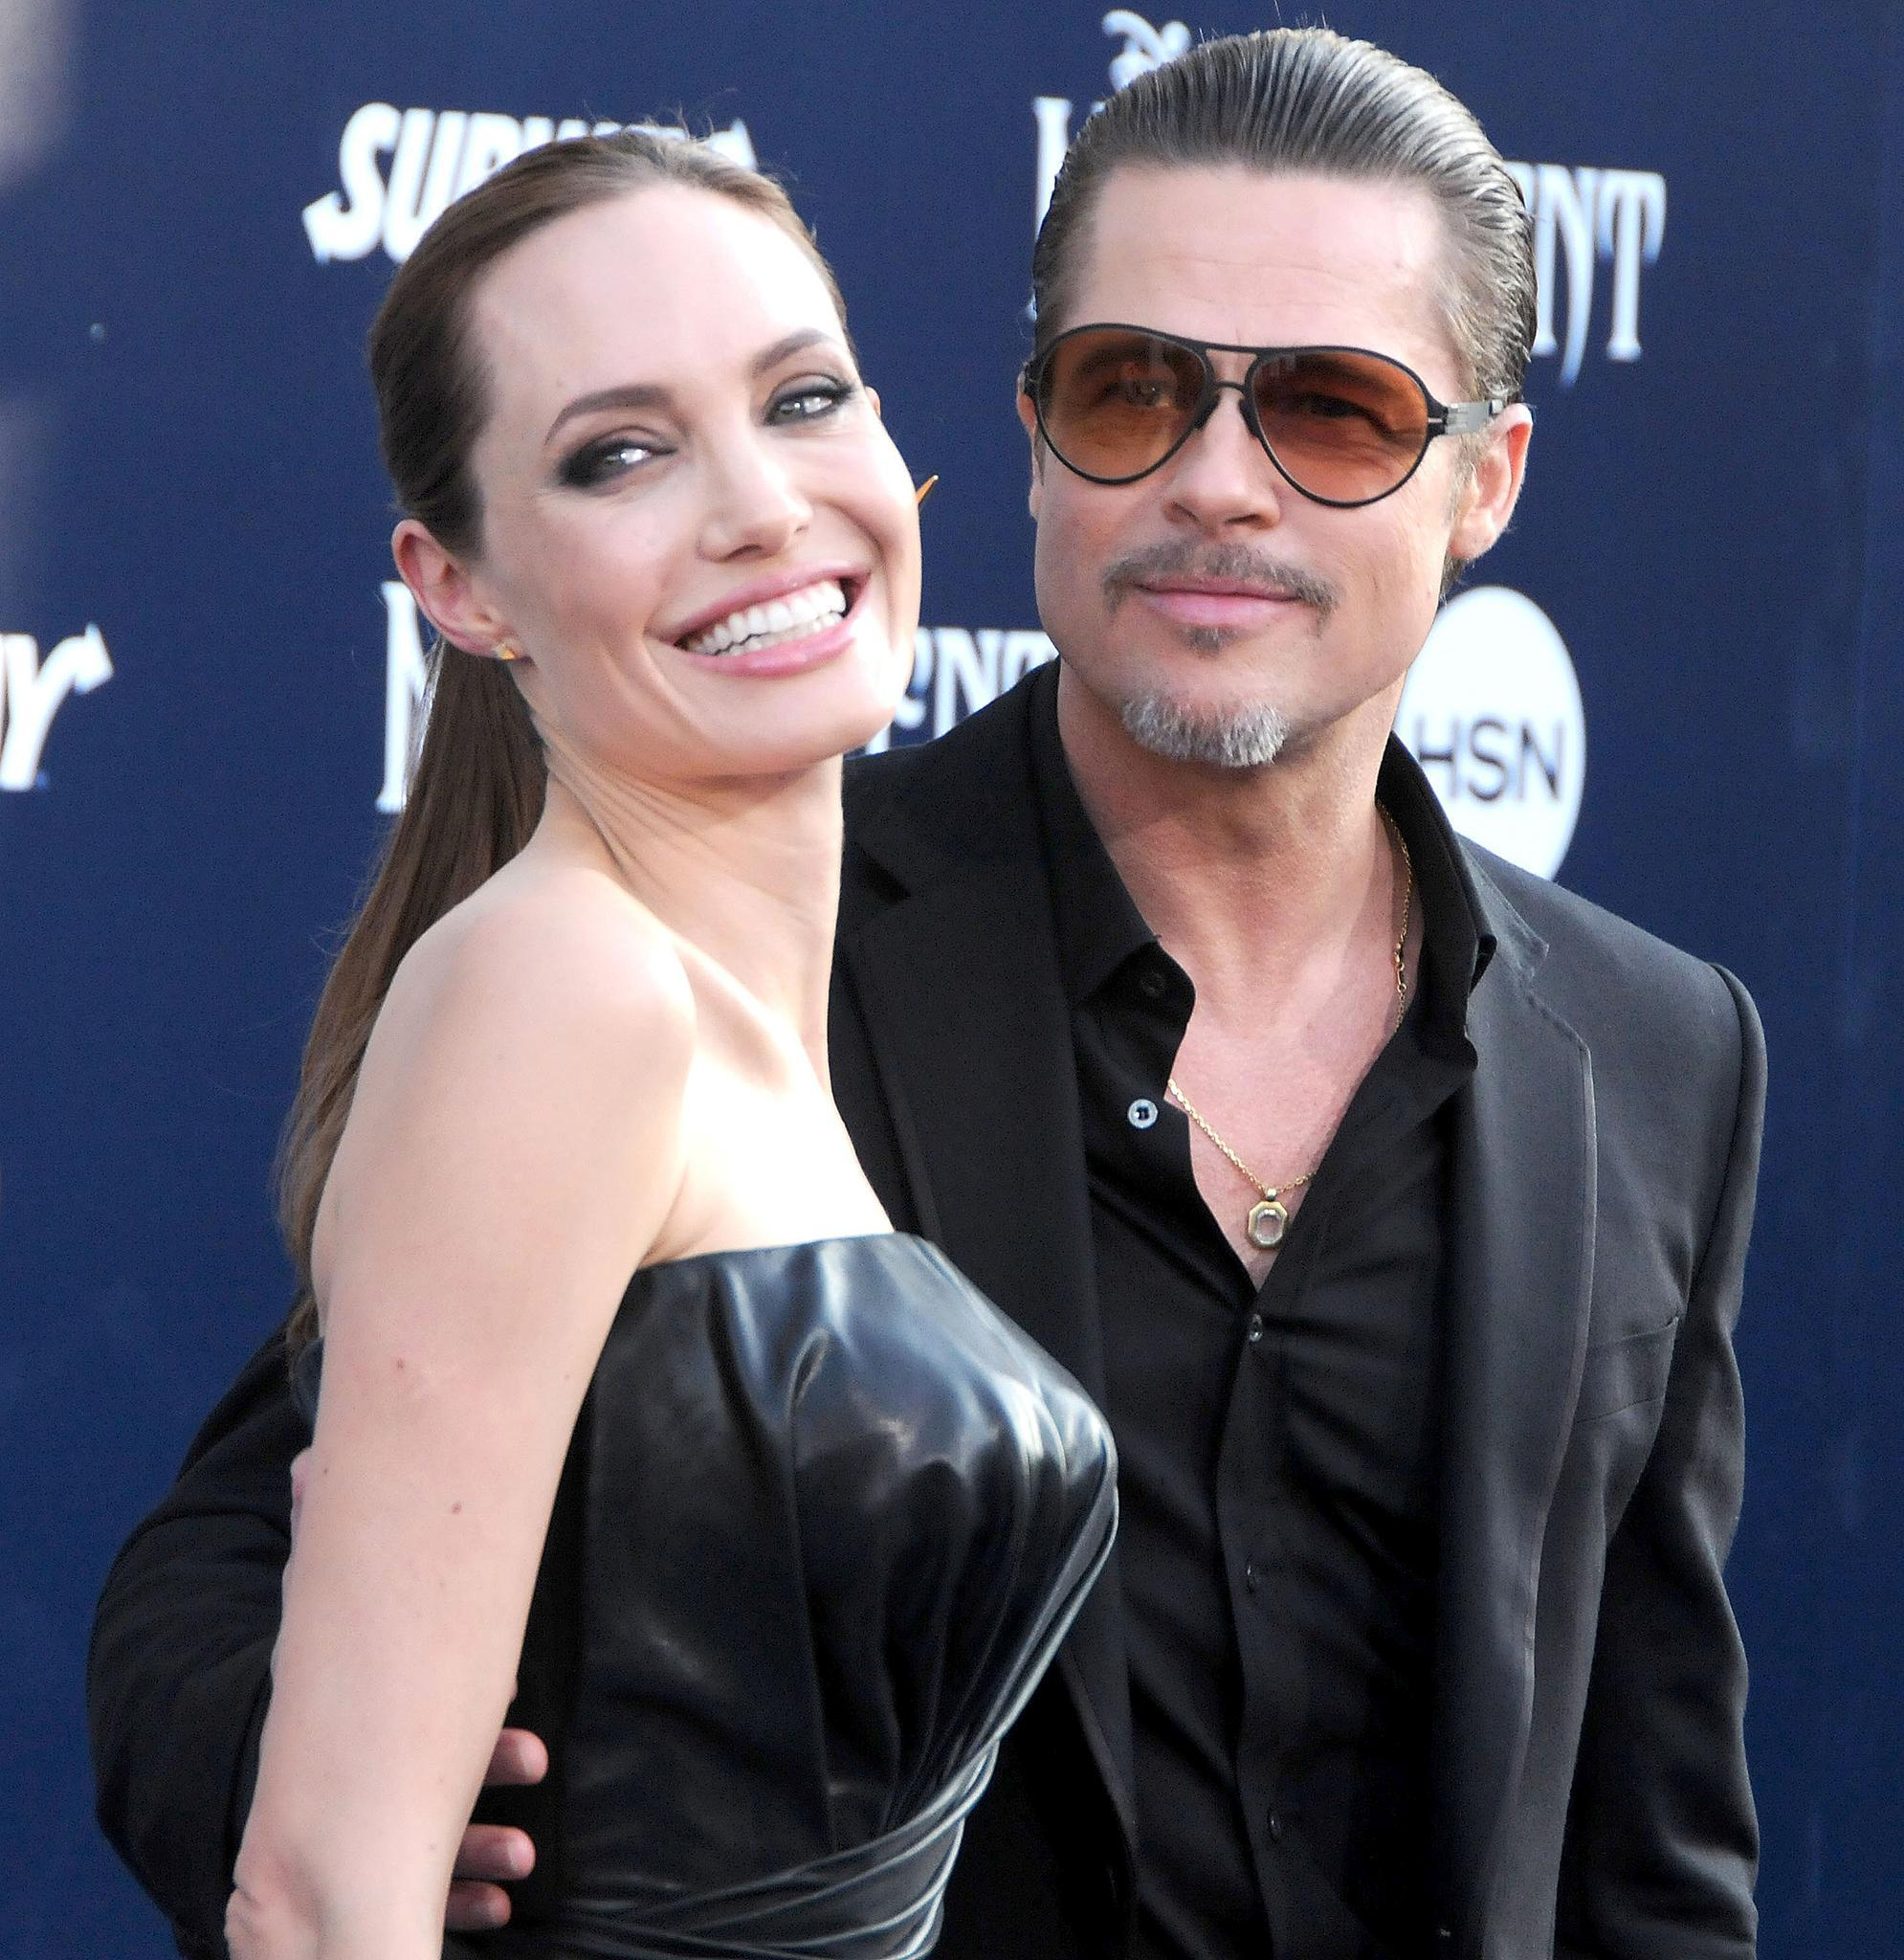 Brad Pitt and Angelina Jolie Will Spend Their Honeymoon Hard at Work